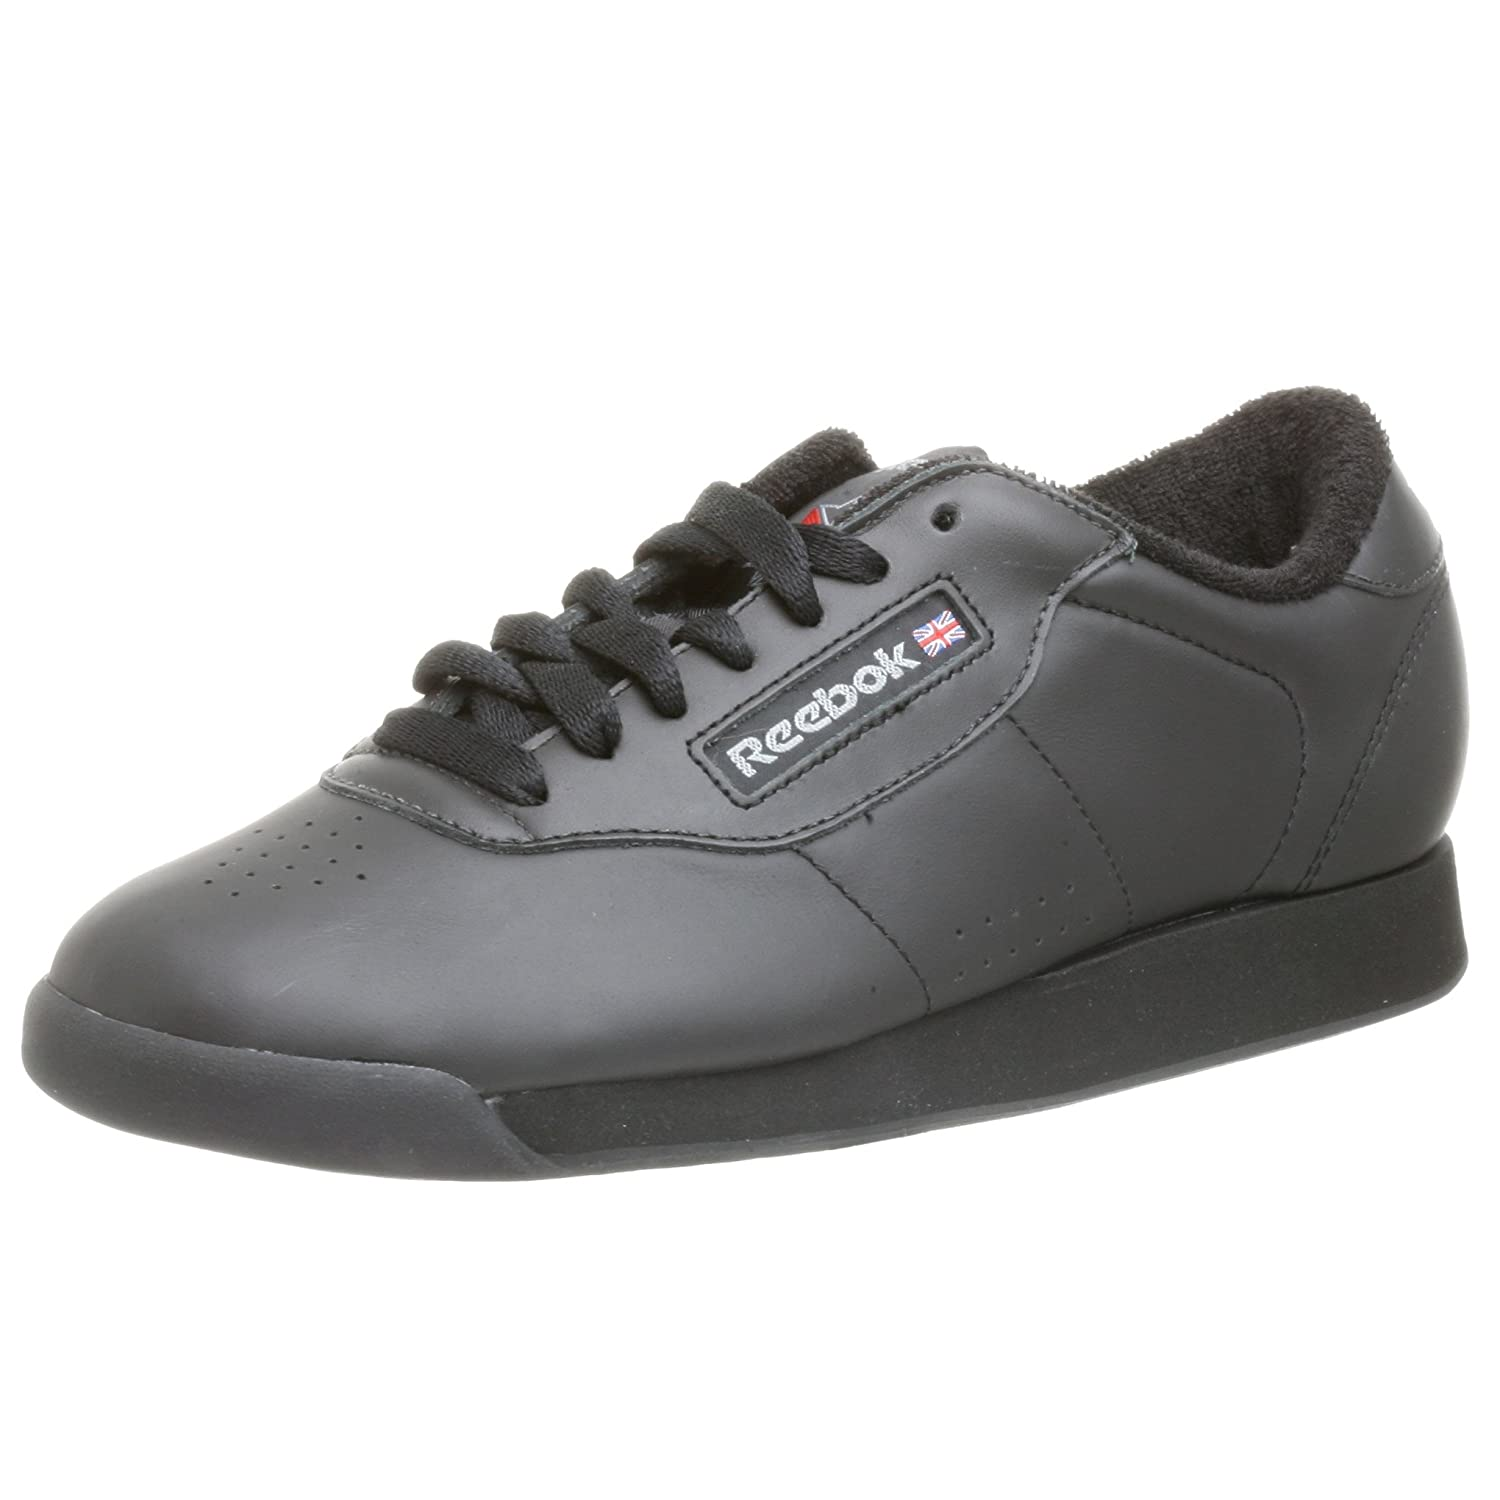 11a98d8bcf6 Reebok Classics Women s Princess Fashion Sneakers  Amazon.ca  Shoes    Handbags